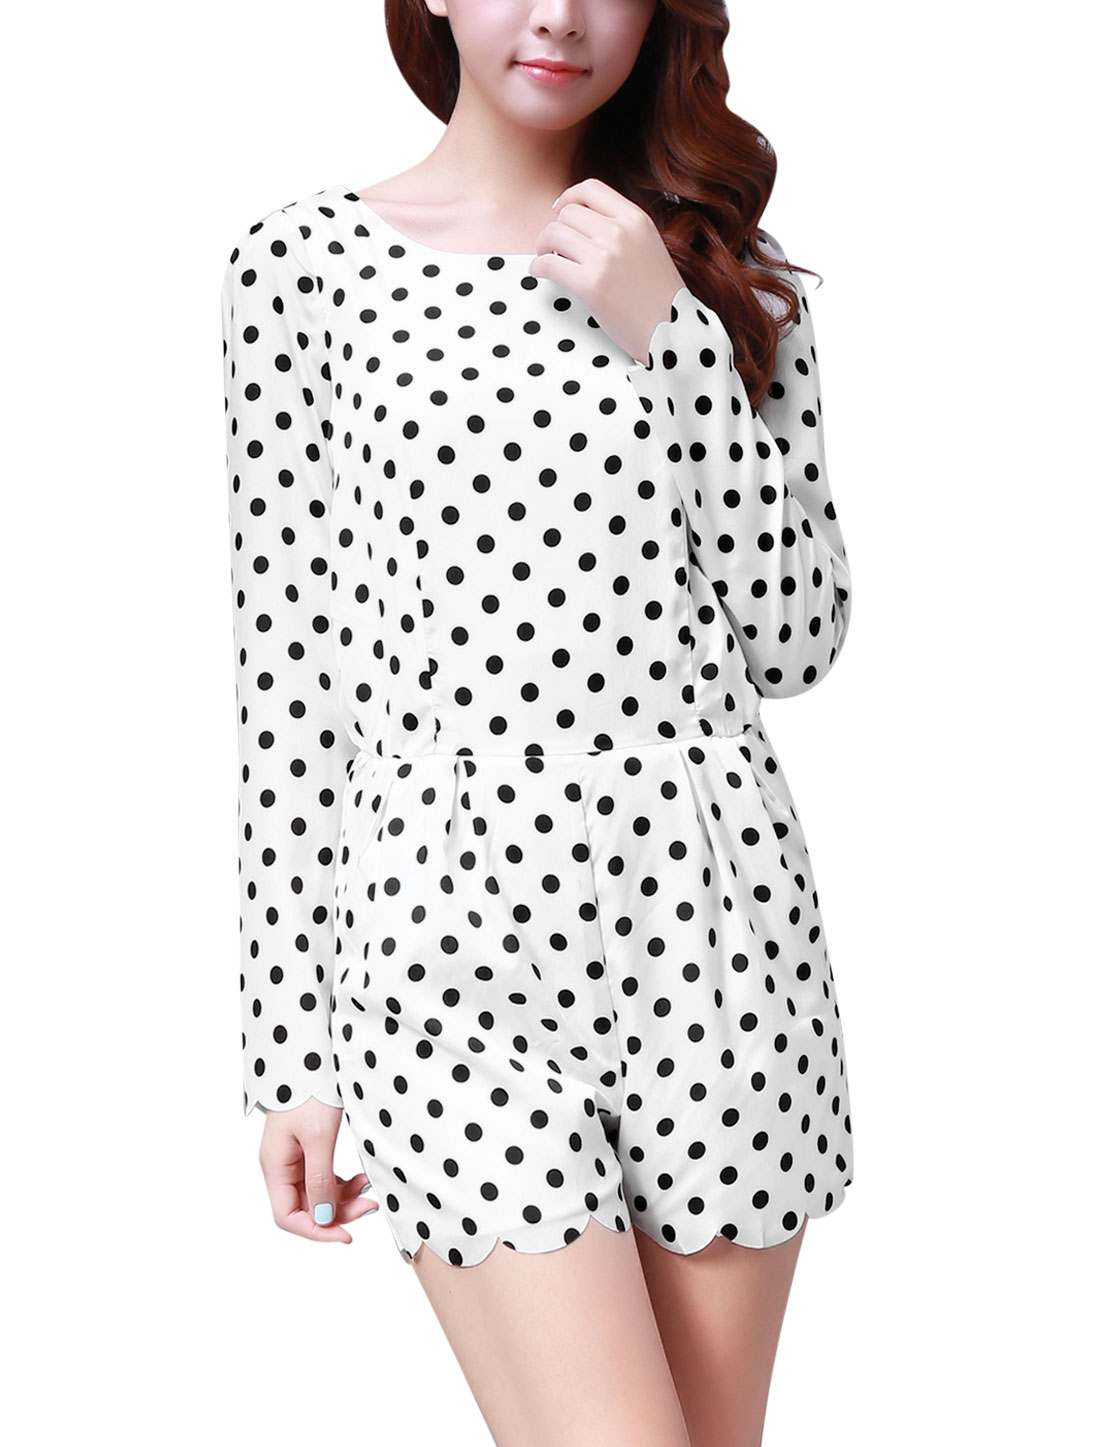 Dots Print Zip up Back White Chiffon Short Romper XS for Lady